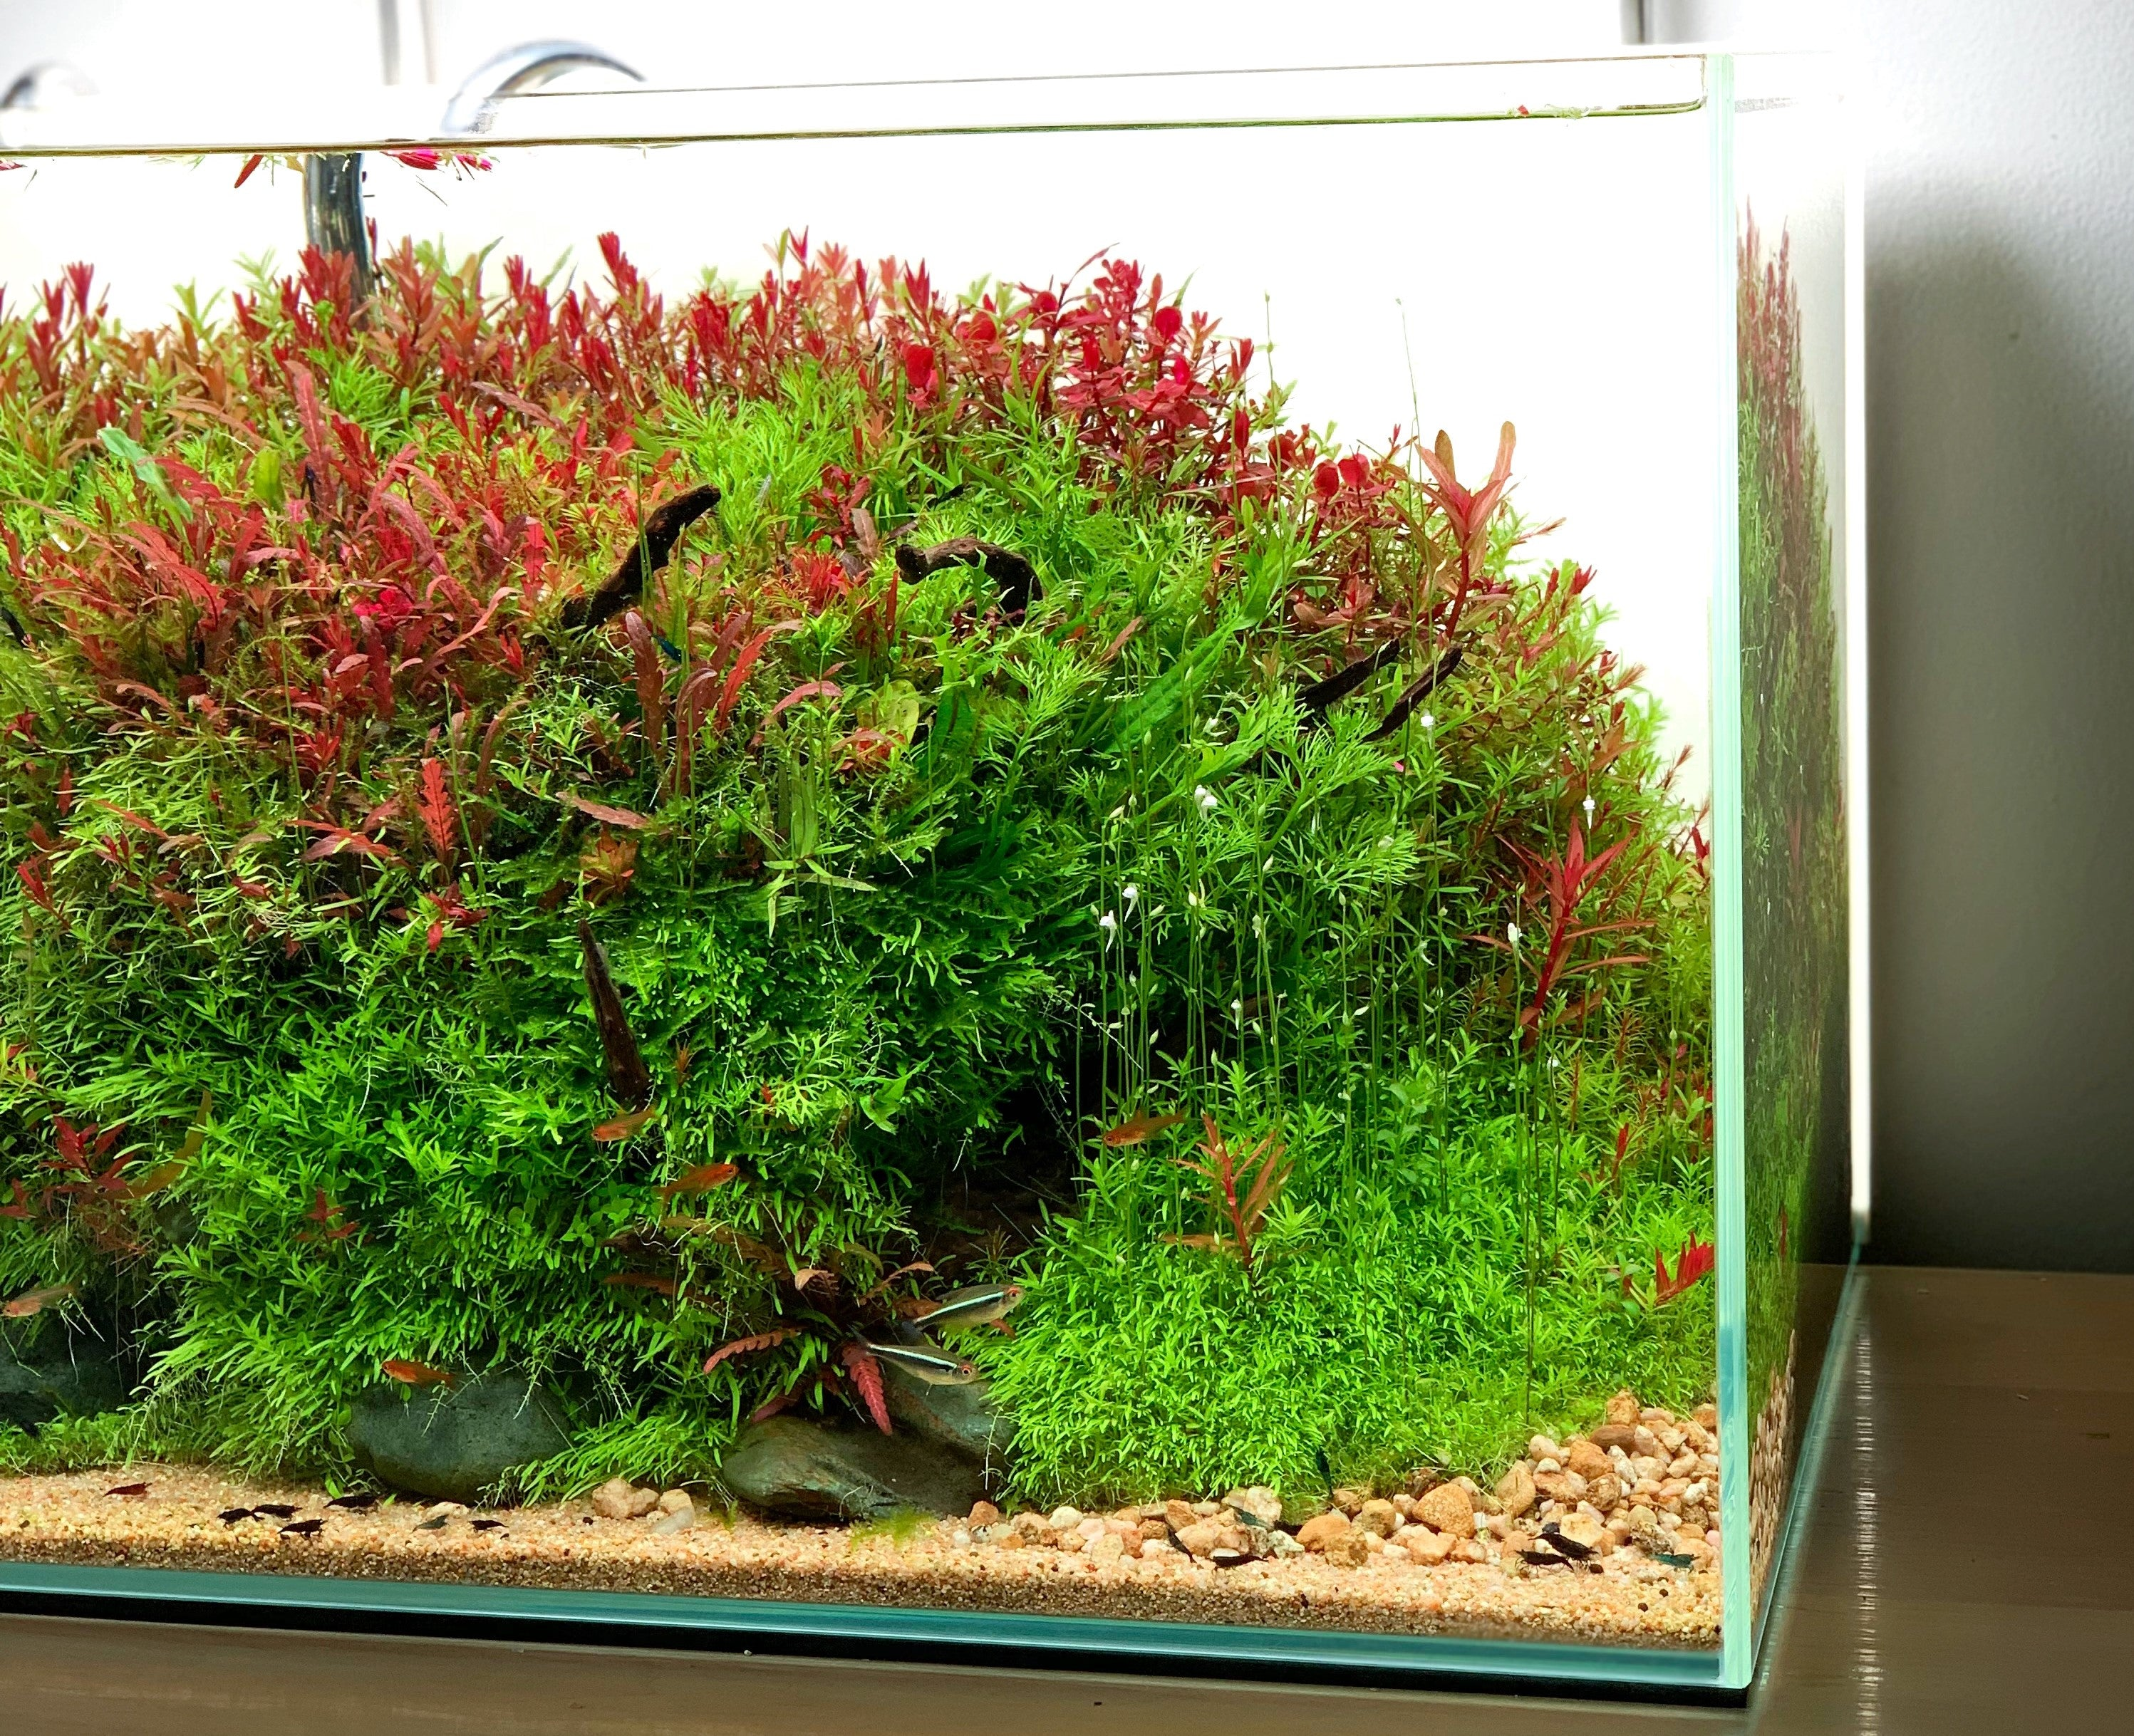 7 Tips to Make Your Aquascape Look Professional